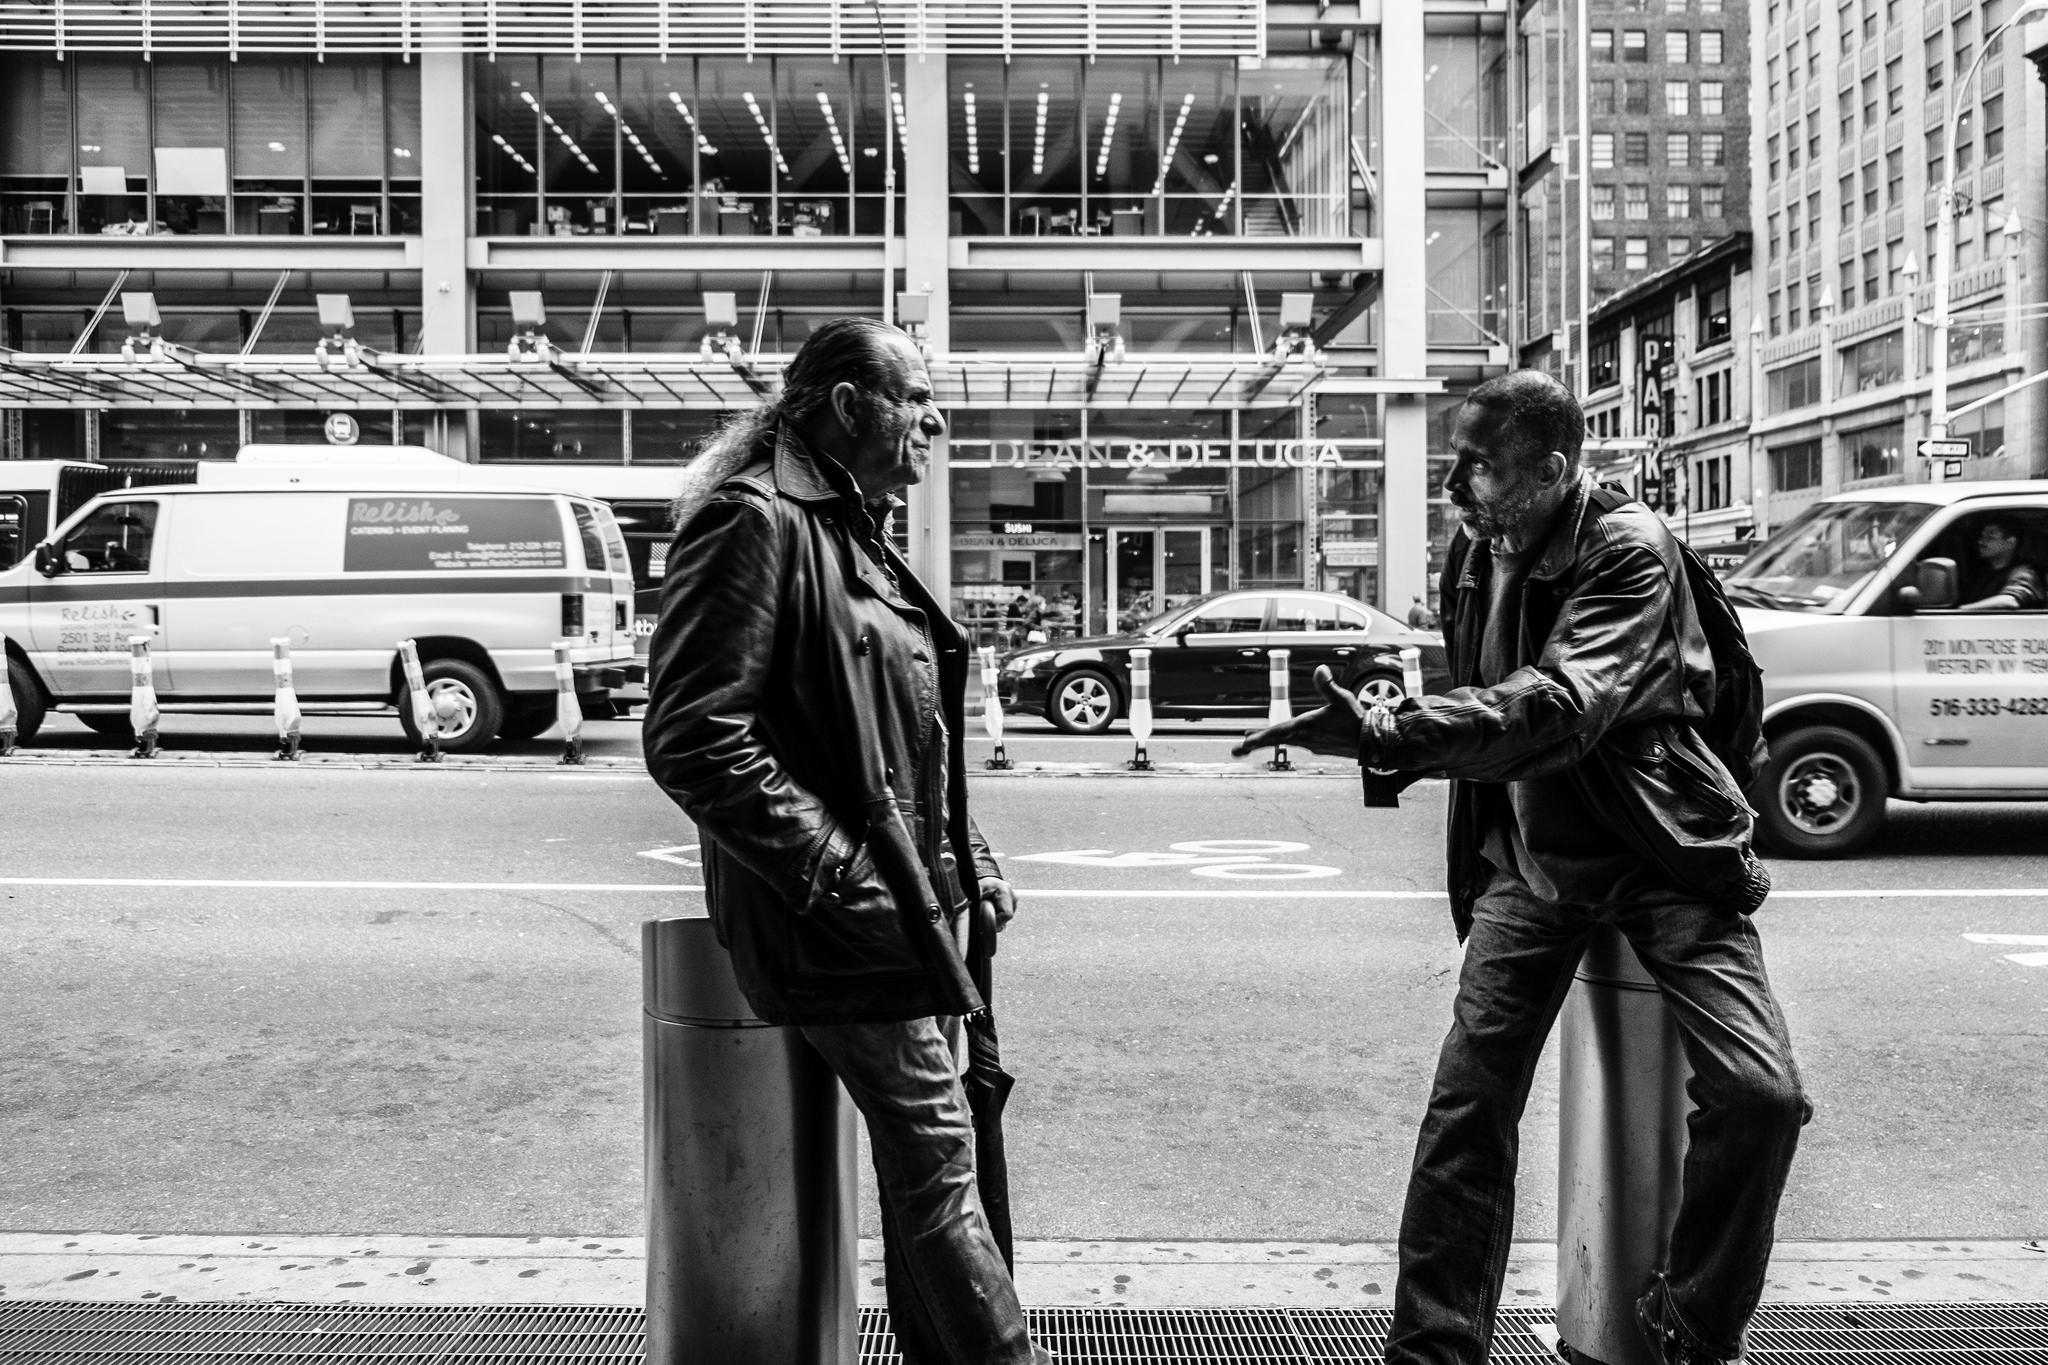 Photograph: two people having a verbal exchange on the sidewalk Reproduced with attribution under Creative Commons license.